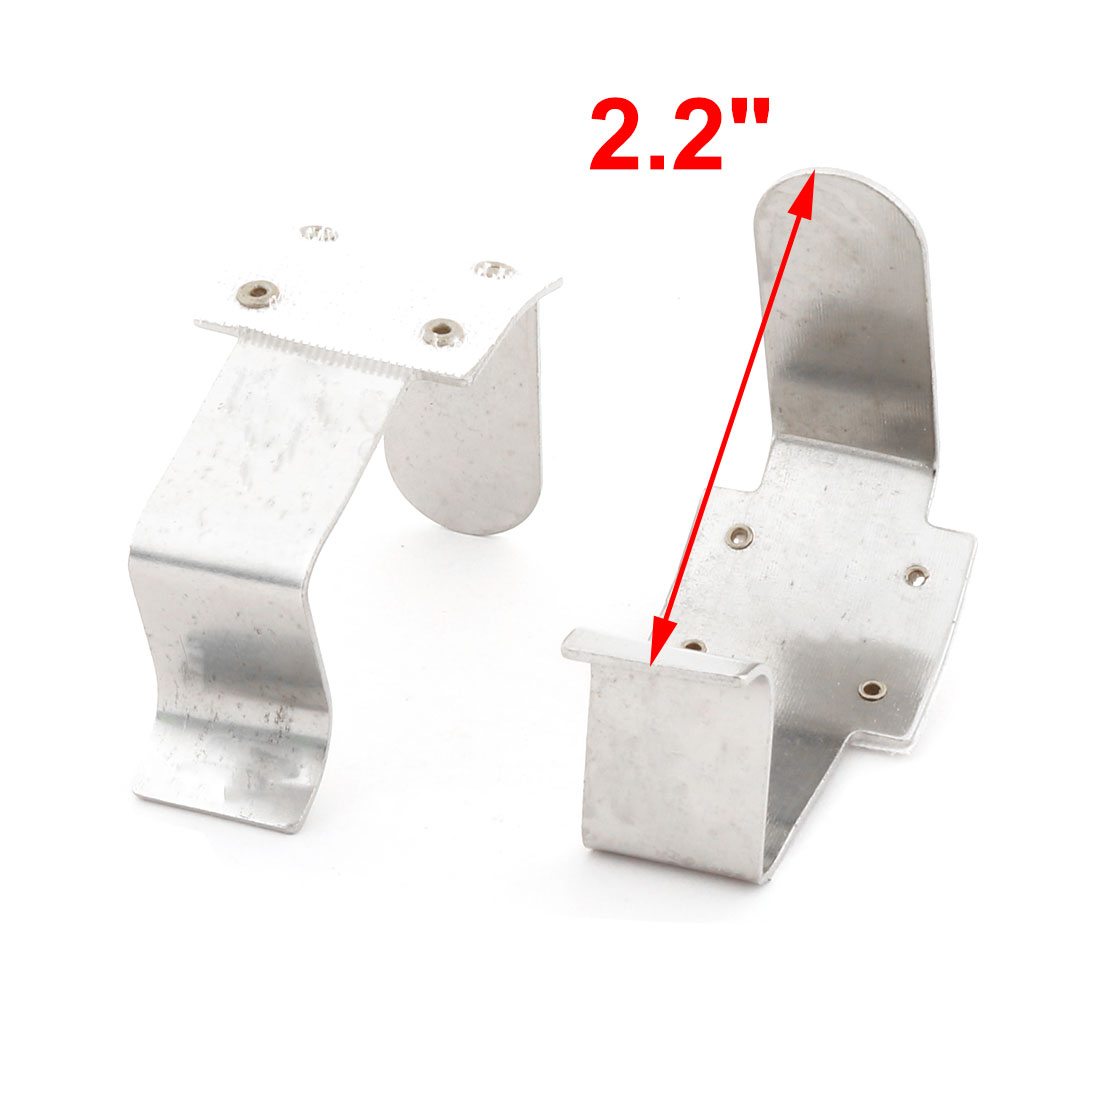 Unique Bargains Hotel Metal Tablecloth Desk Table Cover Fastener Clamp Clip Silver Tone 4 Pcs - image 1 de 3